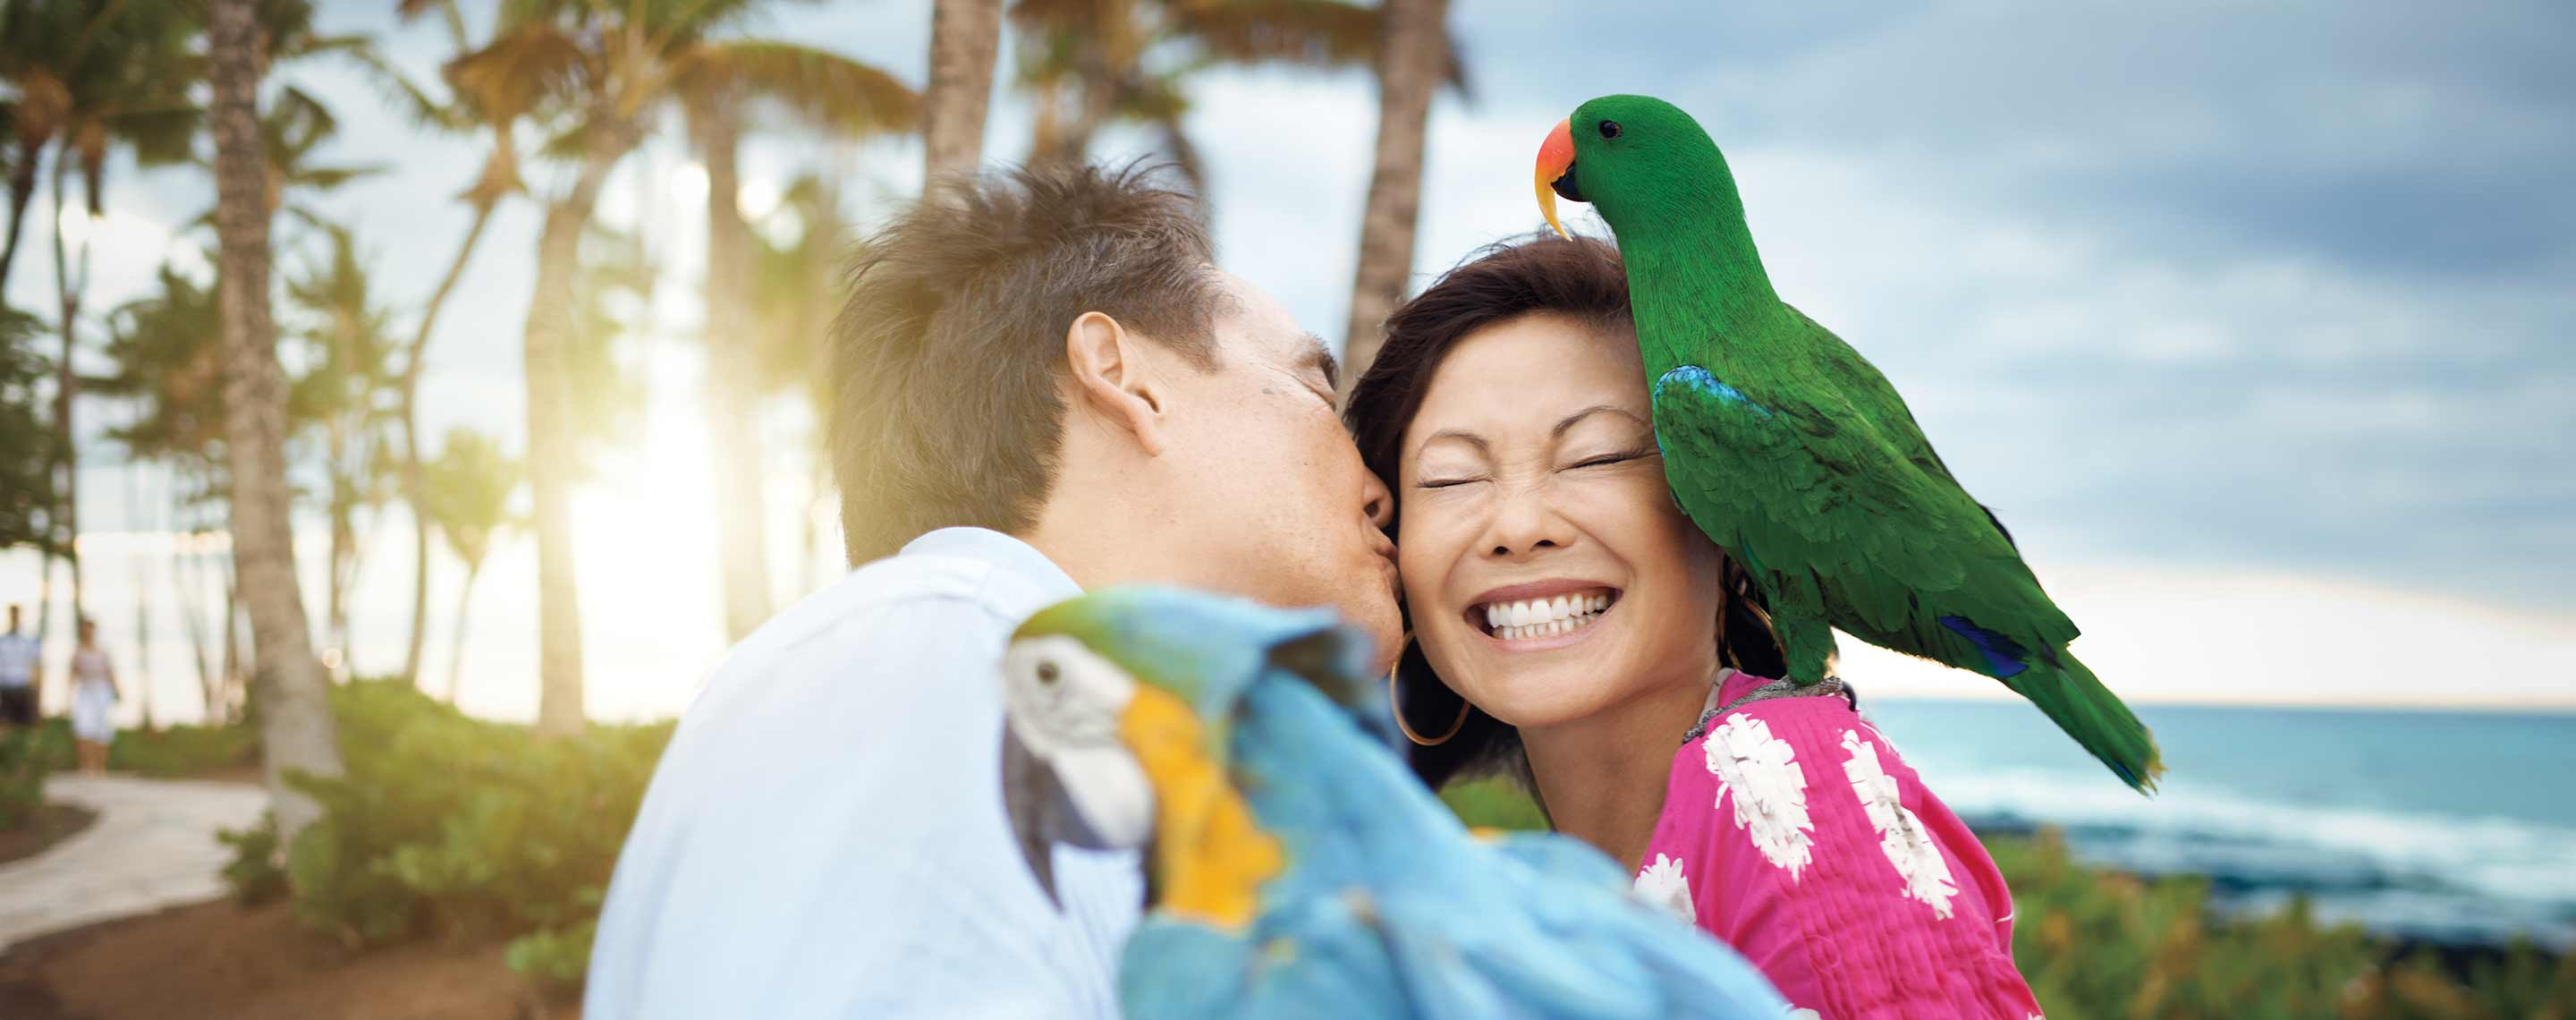 Explore local sites at you home away from home, Hilton Waikoloa Village